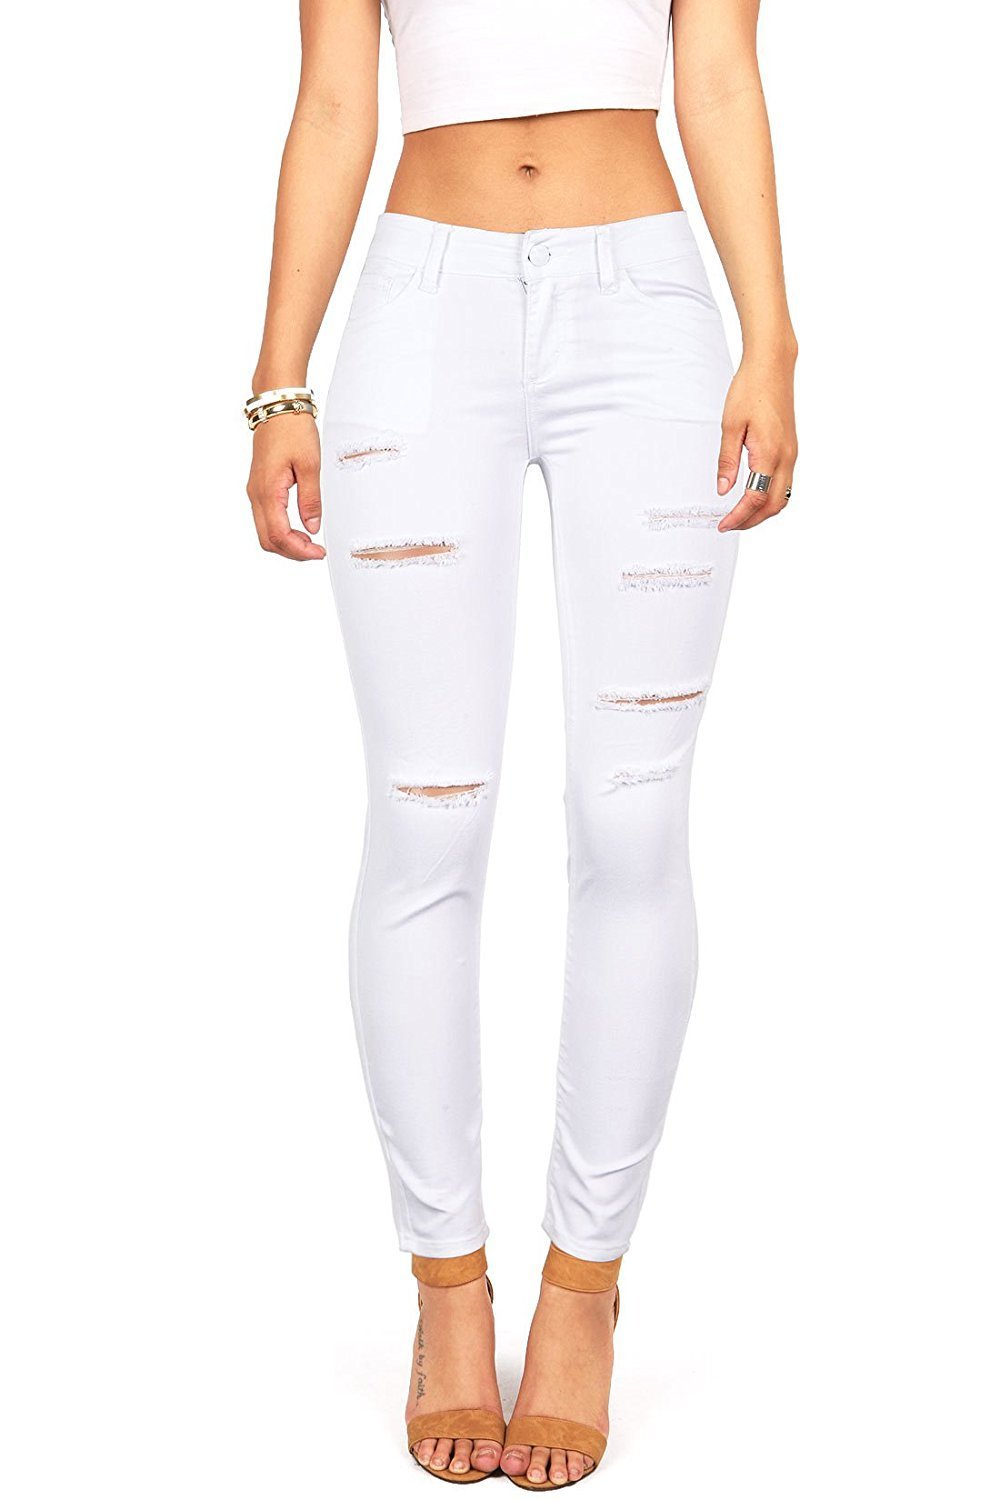 Women's Juniors Mid-Rise Distressed Slim Fit Stretchy Skinny Jeans Jegging White